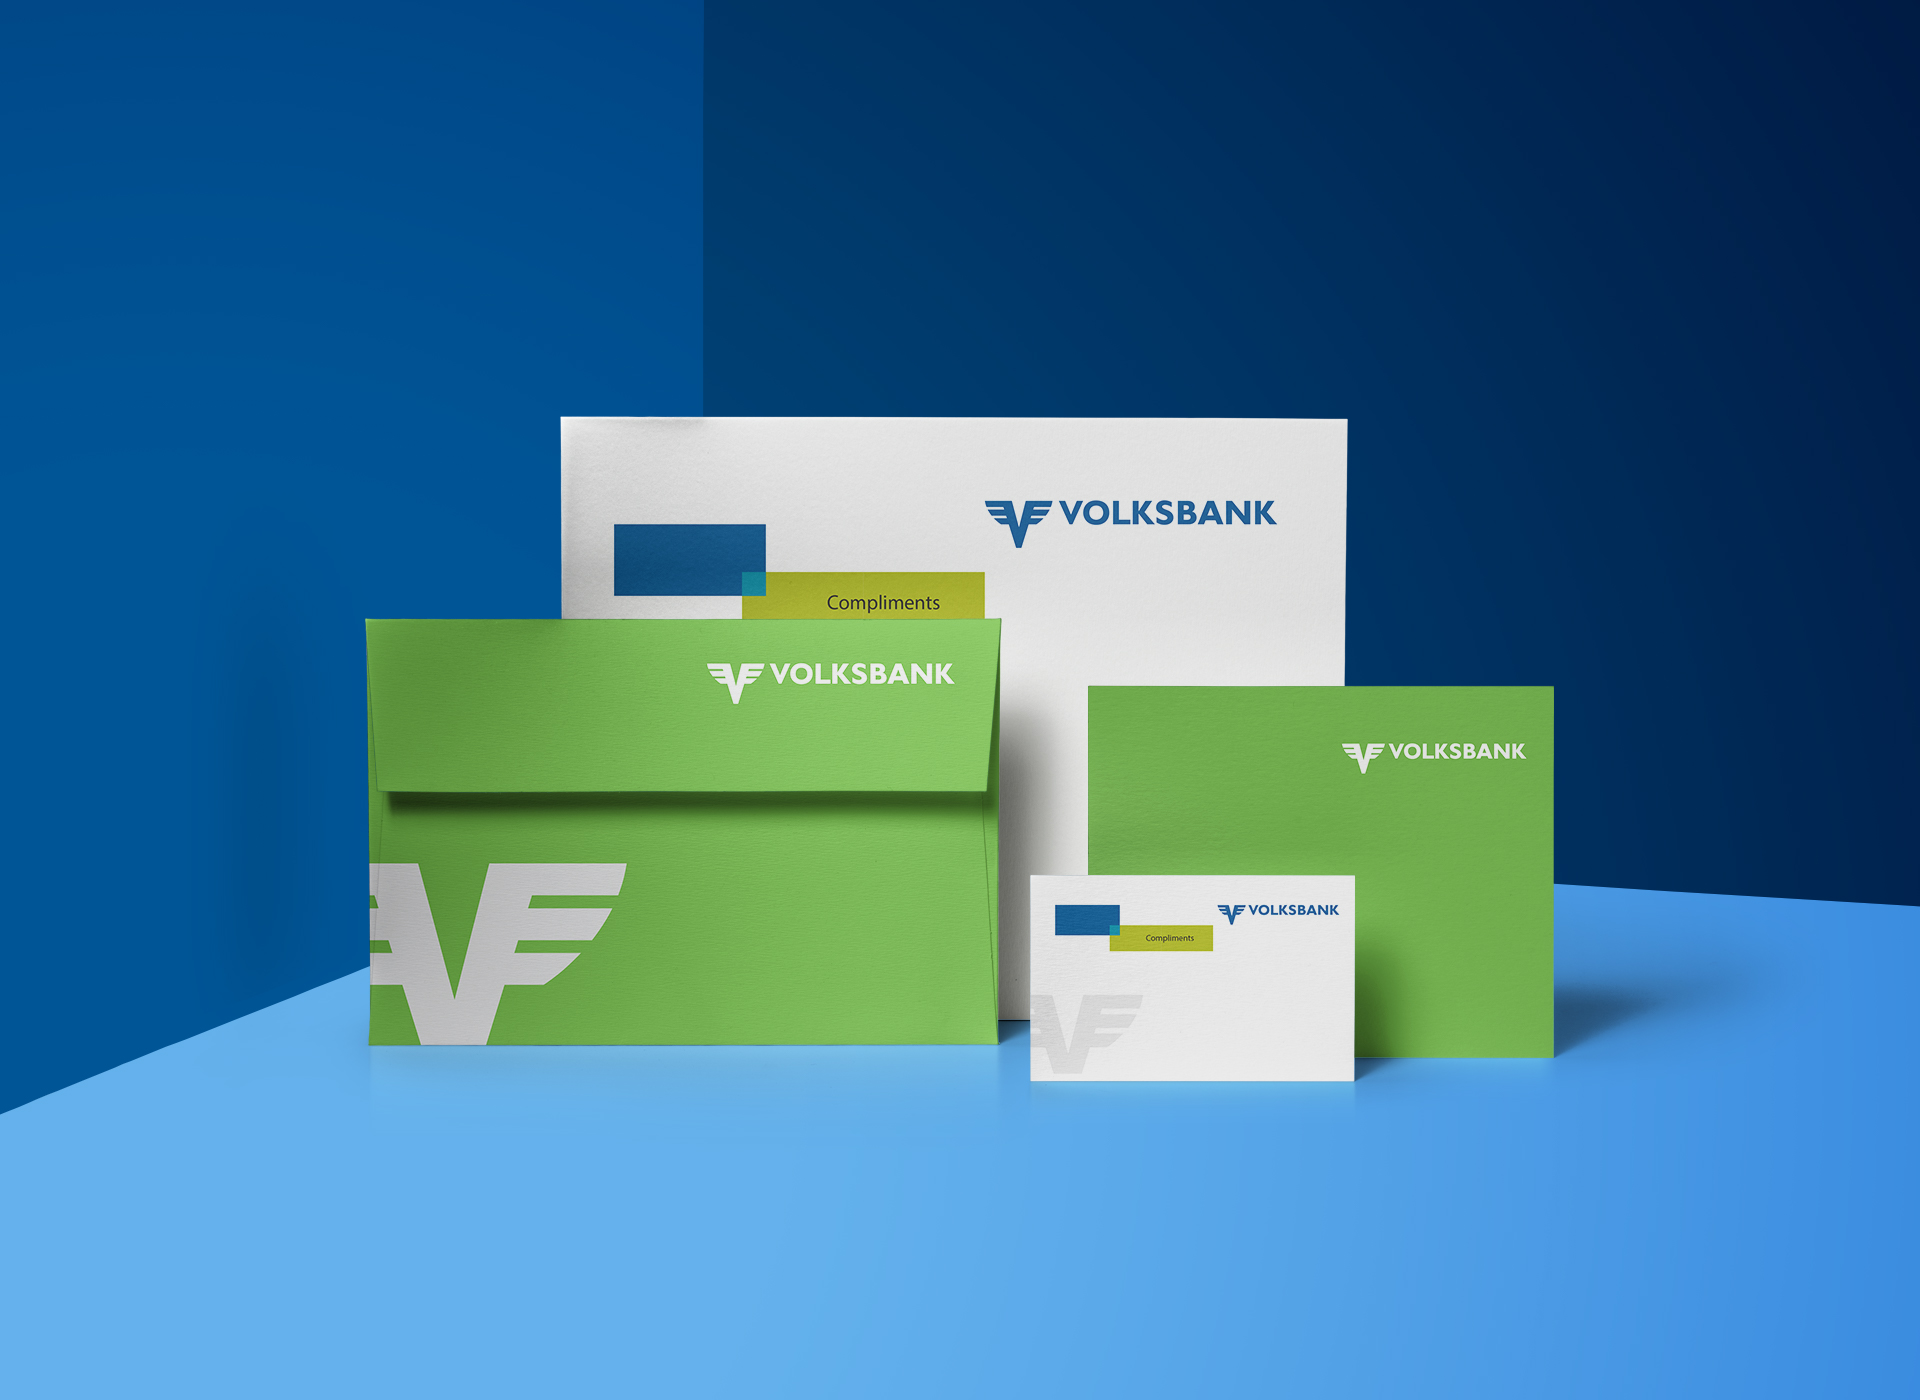 volksbank greeting card portofoliu inoveo